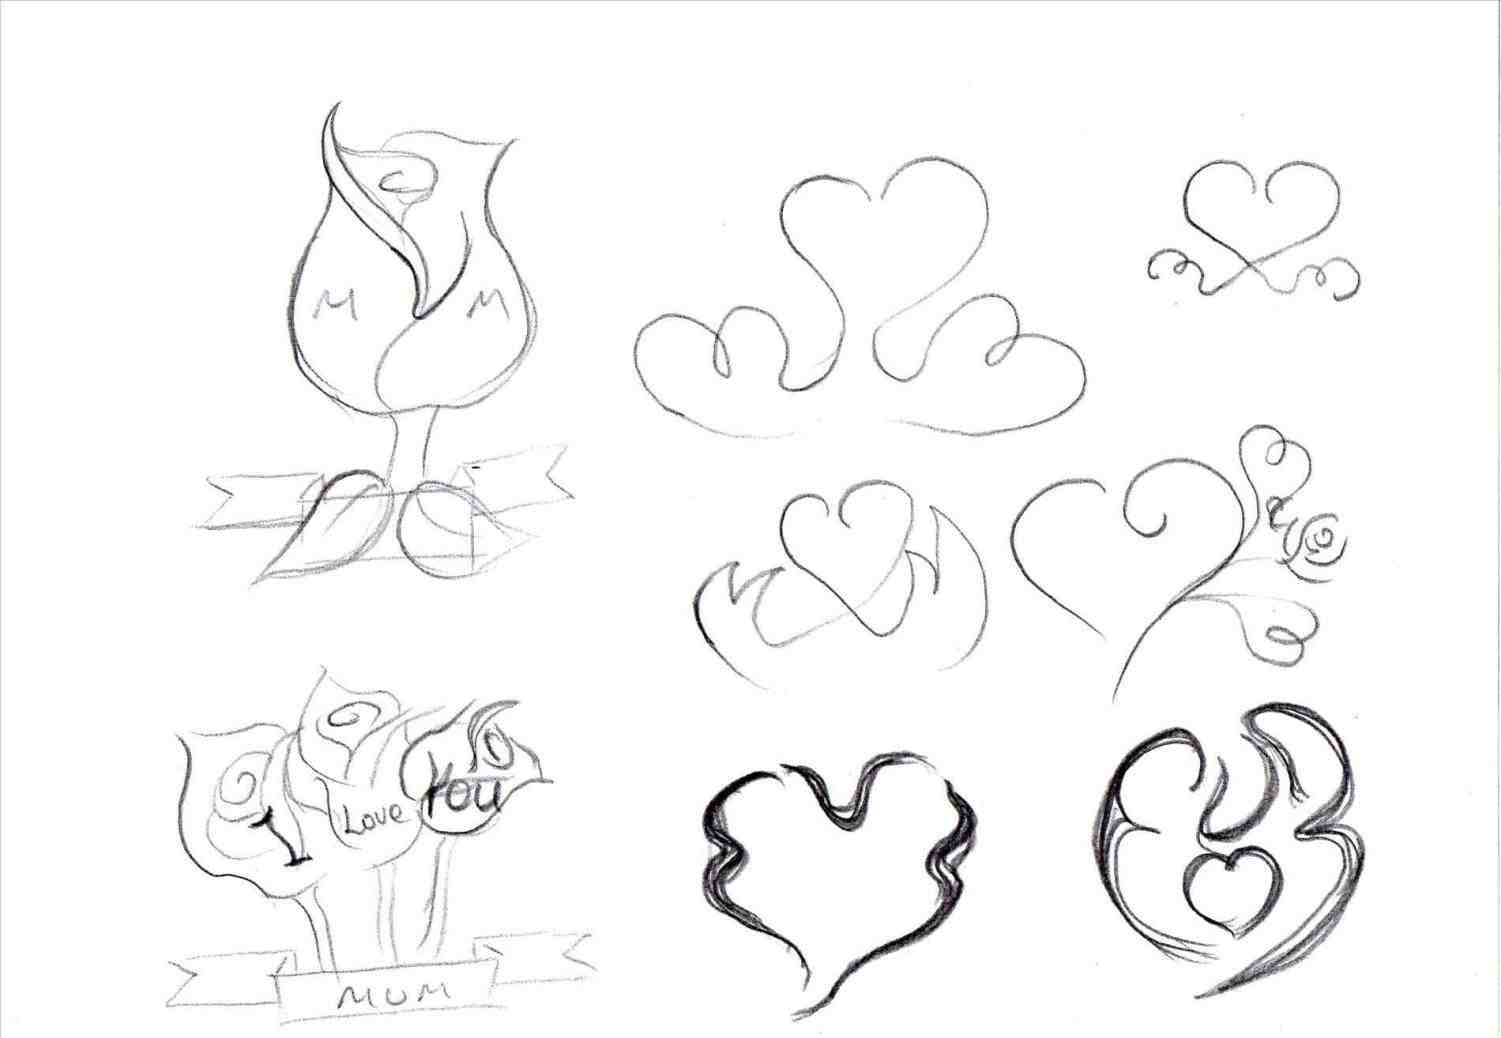 1501x1038 I Love You Drawings In Pencil With Heart